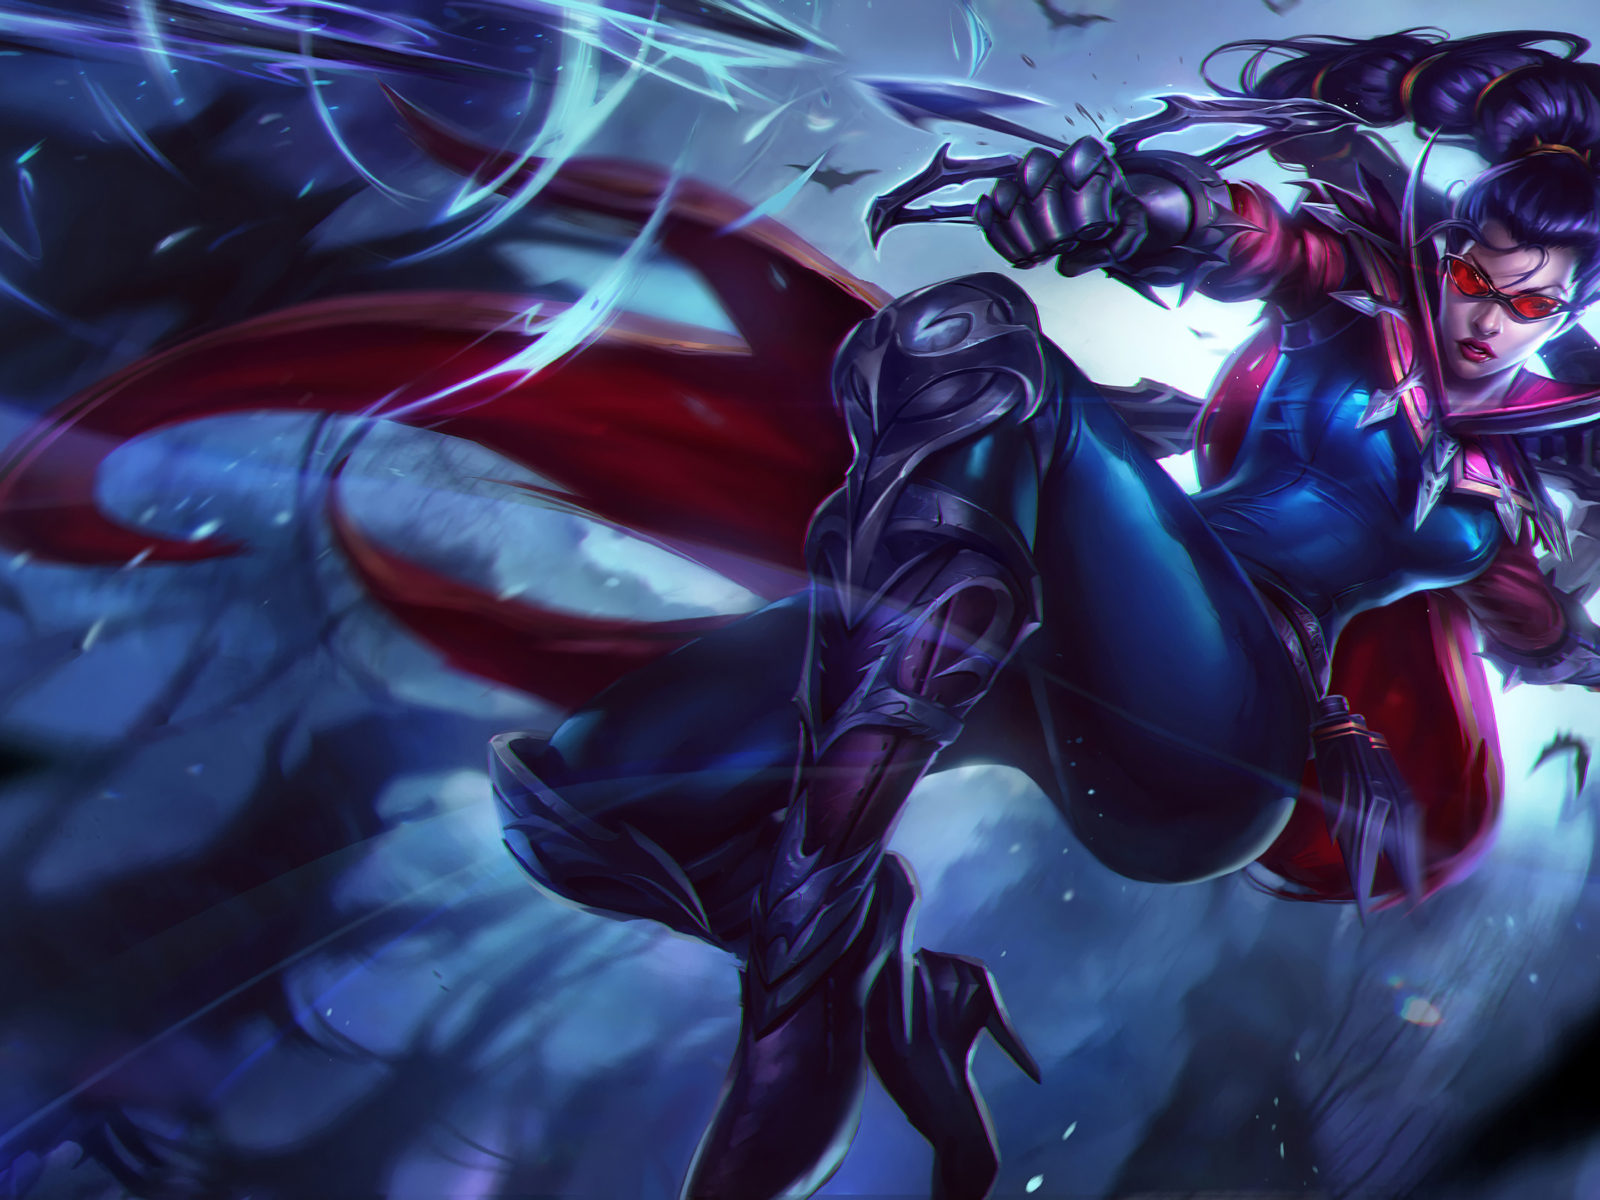 Wallpaper 3840 1200 Girl League Of Legends Fantasy Game Vayne Splash Art Hd